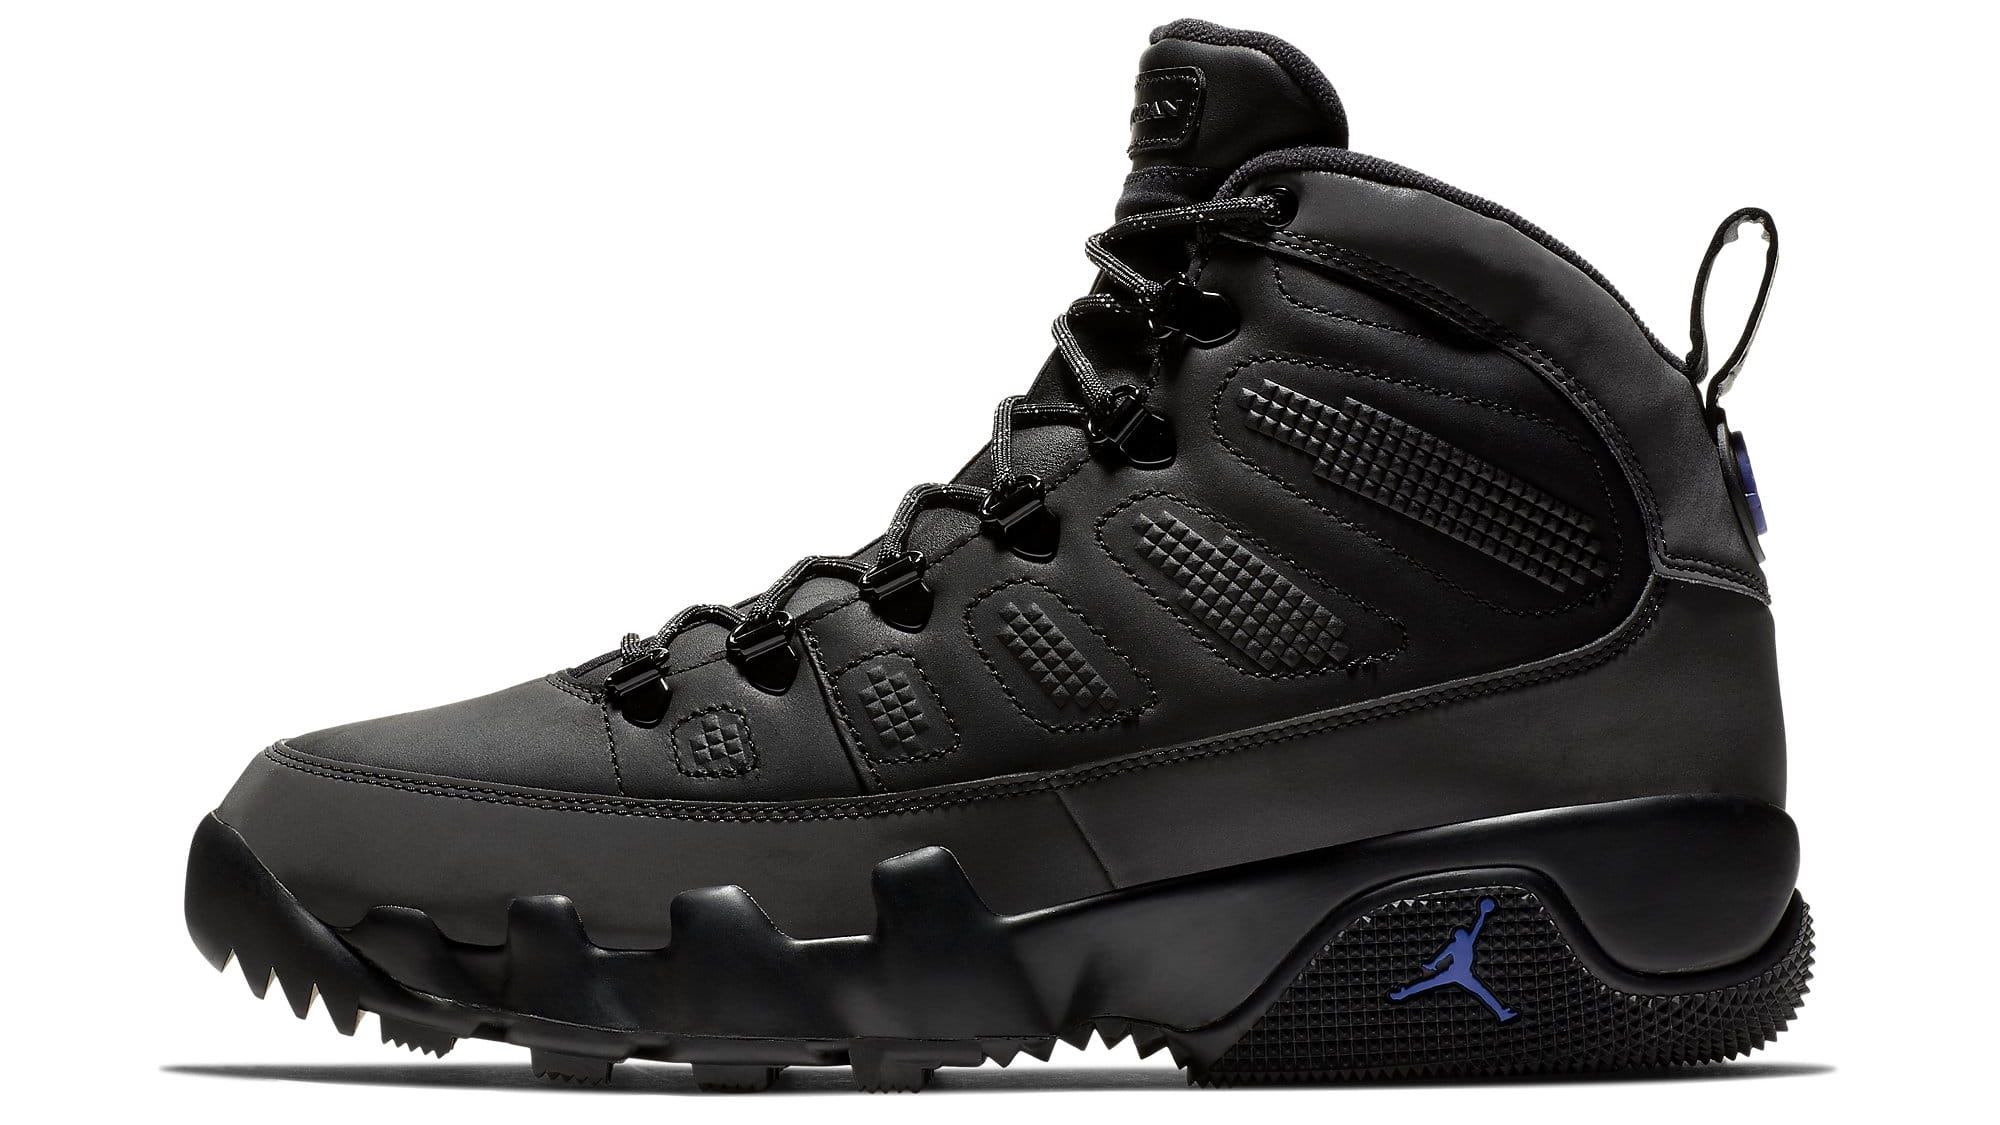 air-jordan-9-retro-boot-nrg-black-concord-ar4491-001-lateral